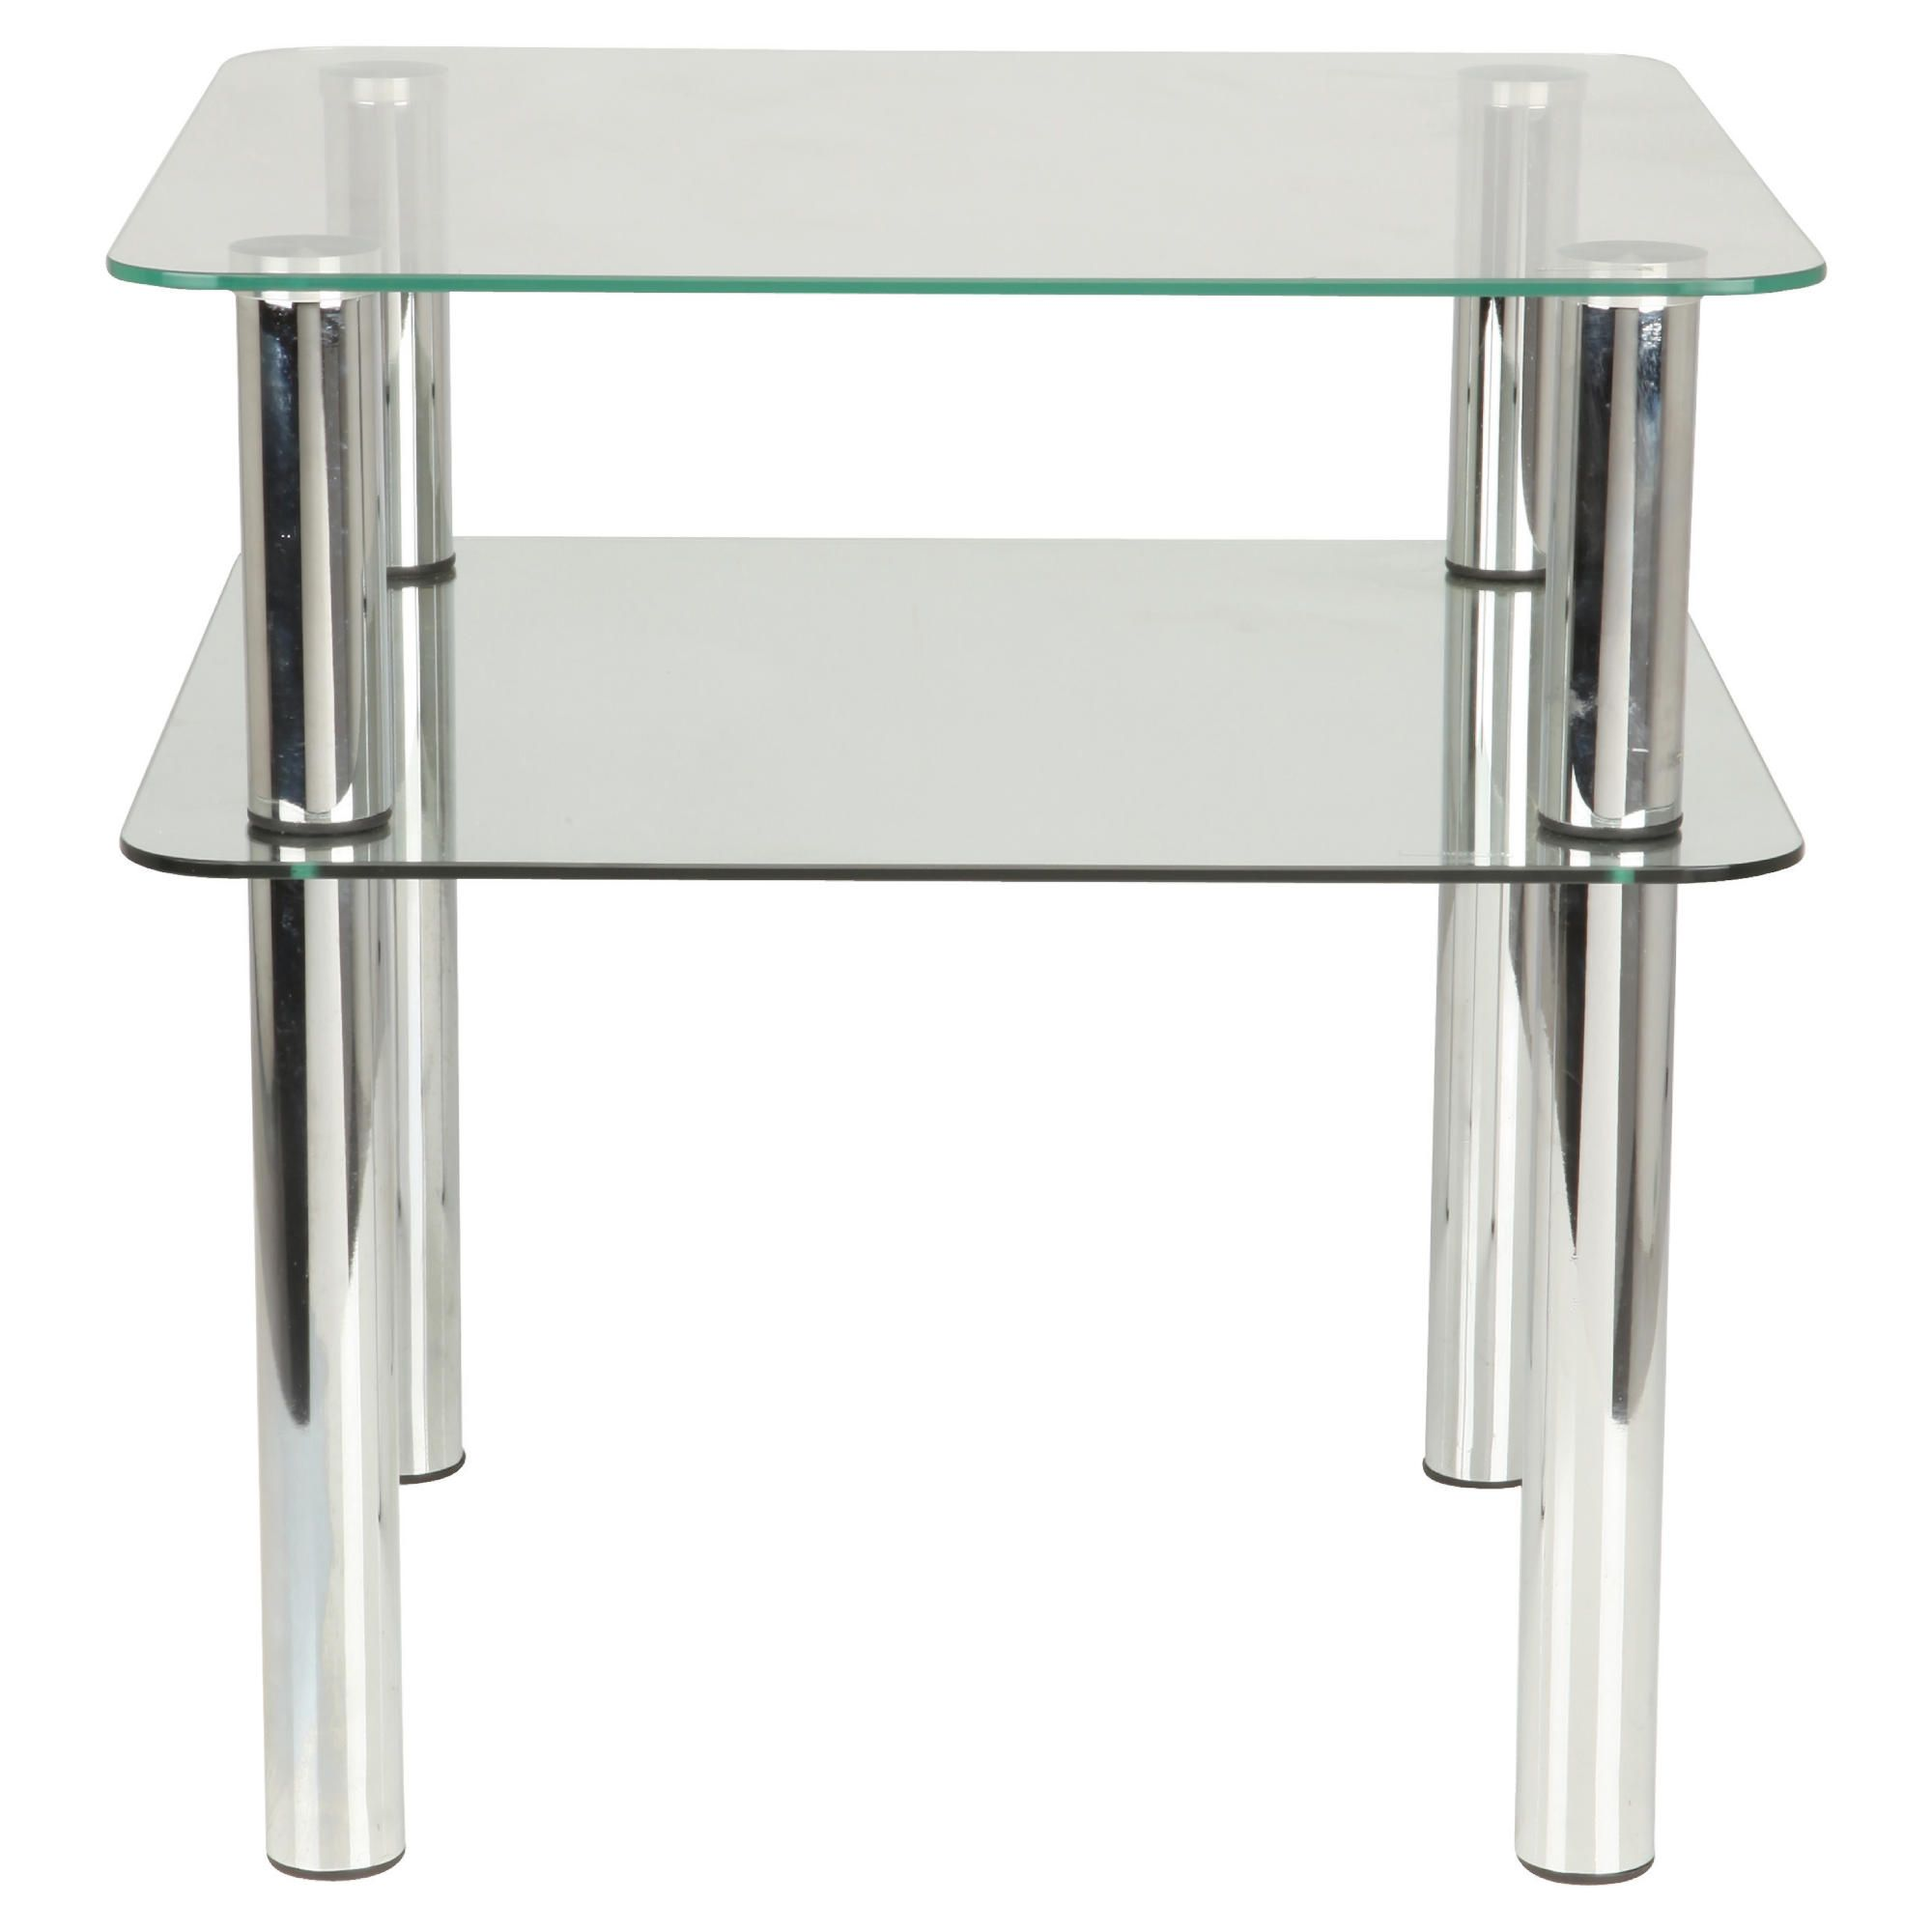 Home And Garden Furniture Caravelle Black Glass Coffee Table With Chrome Legs Special Offers